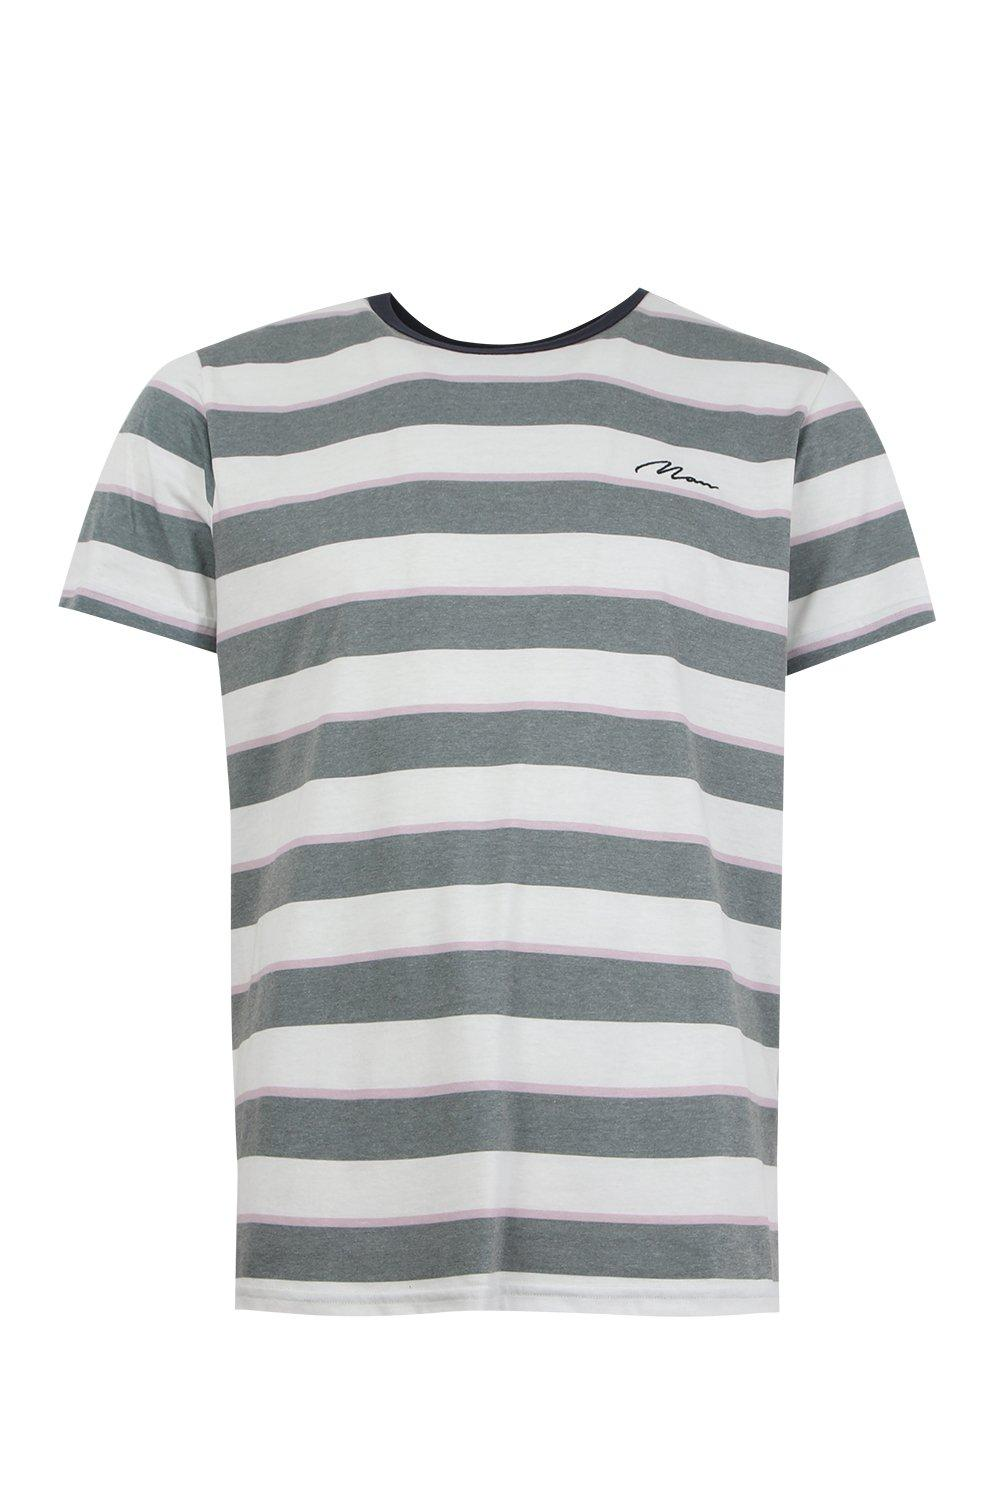 boohooMAN white Loose Embroidered Stripe T-Shirt